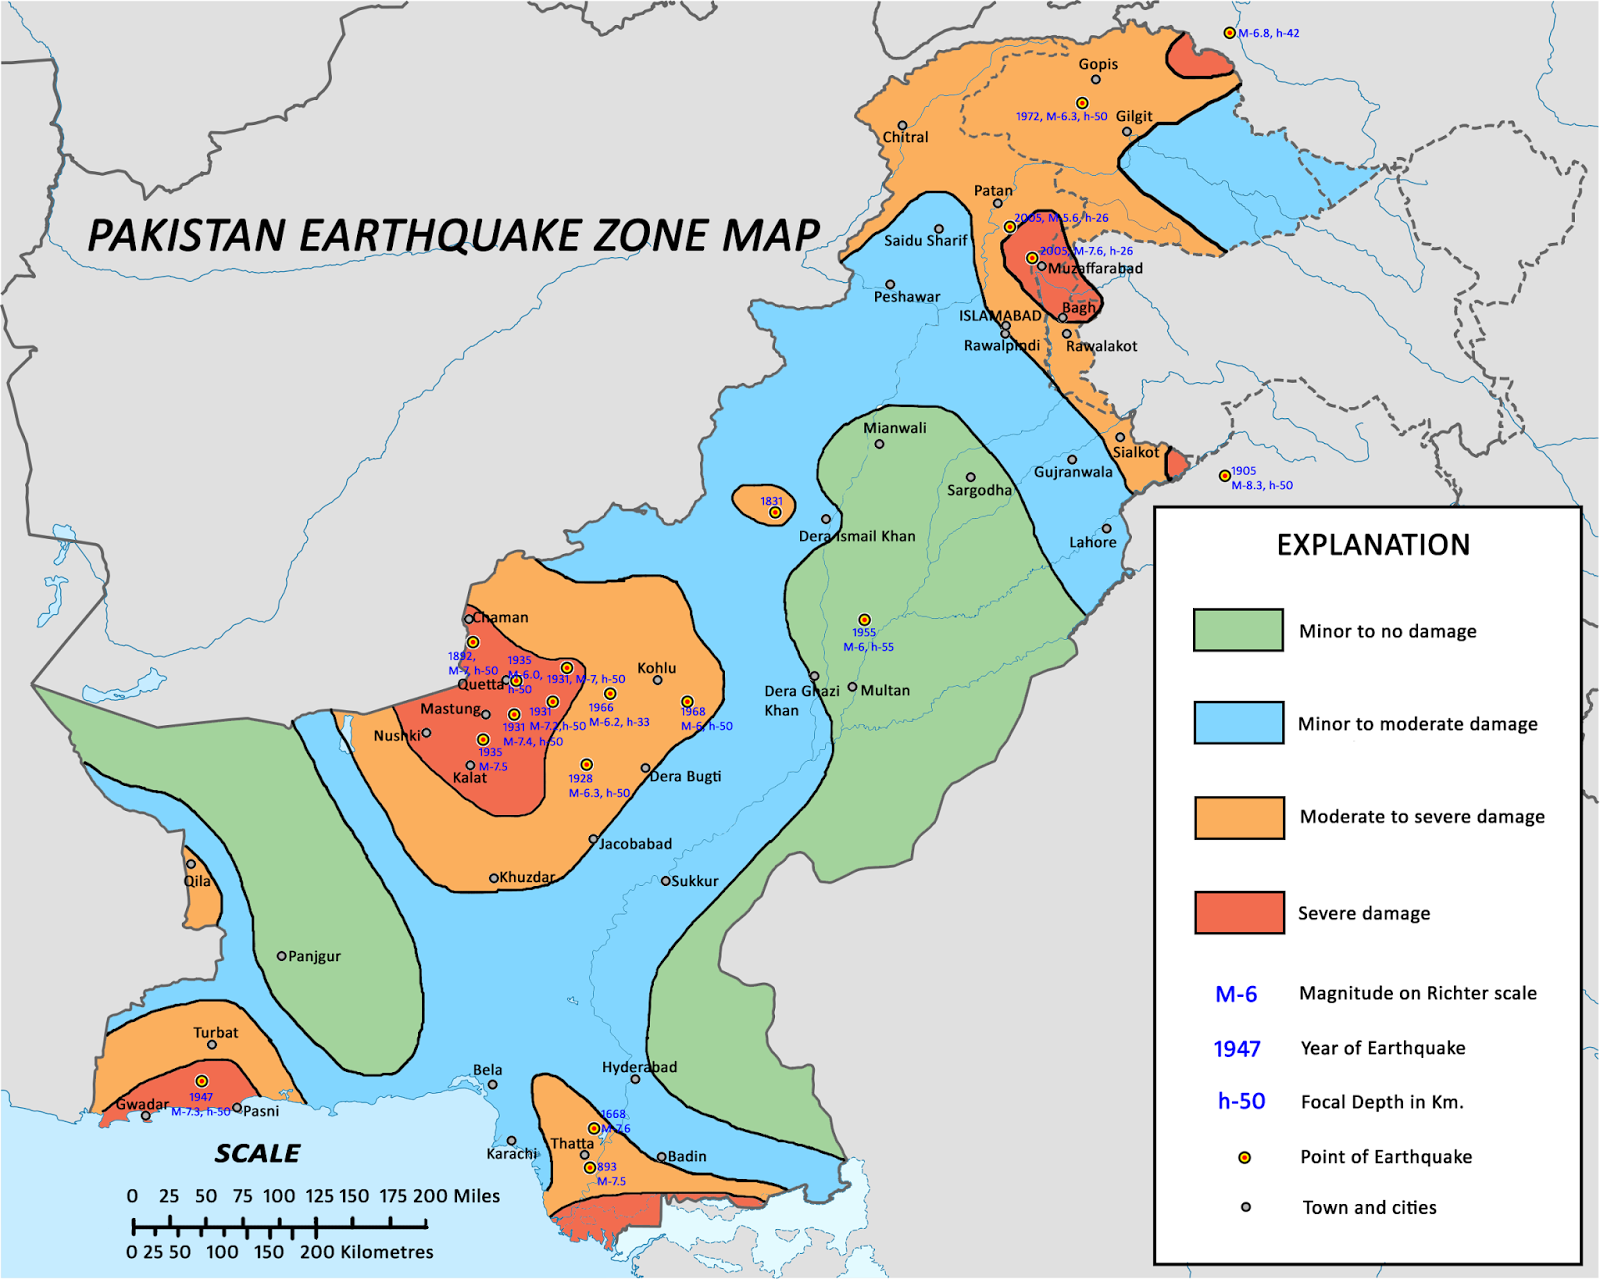 Figure 2: Seismic zoning map of Pakistan